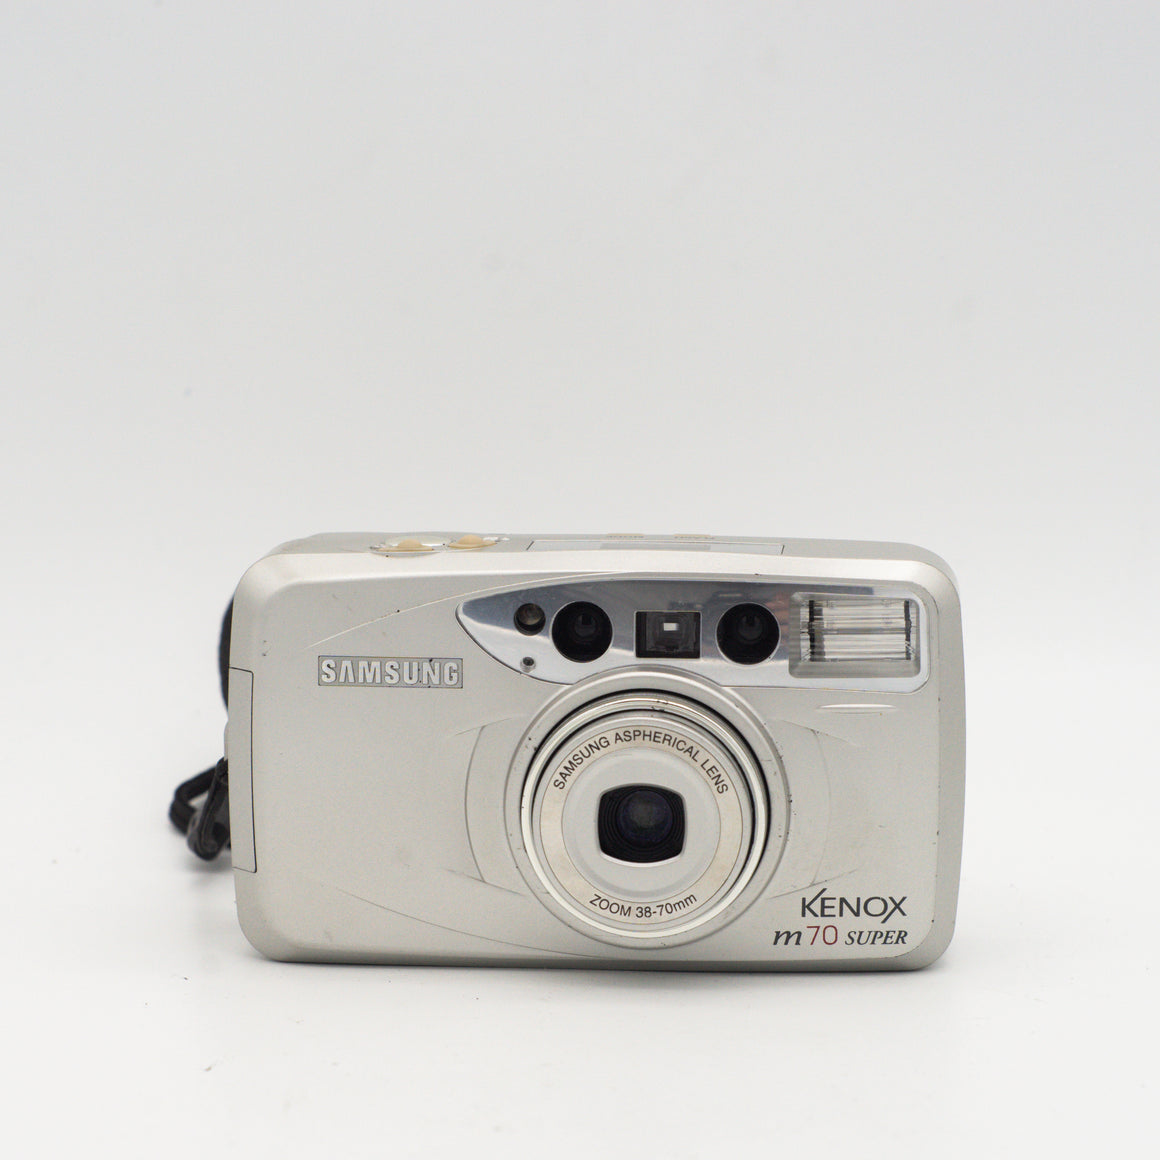 Samsung Kenox 35mm point and shoot camera